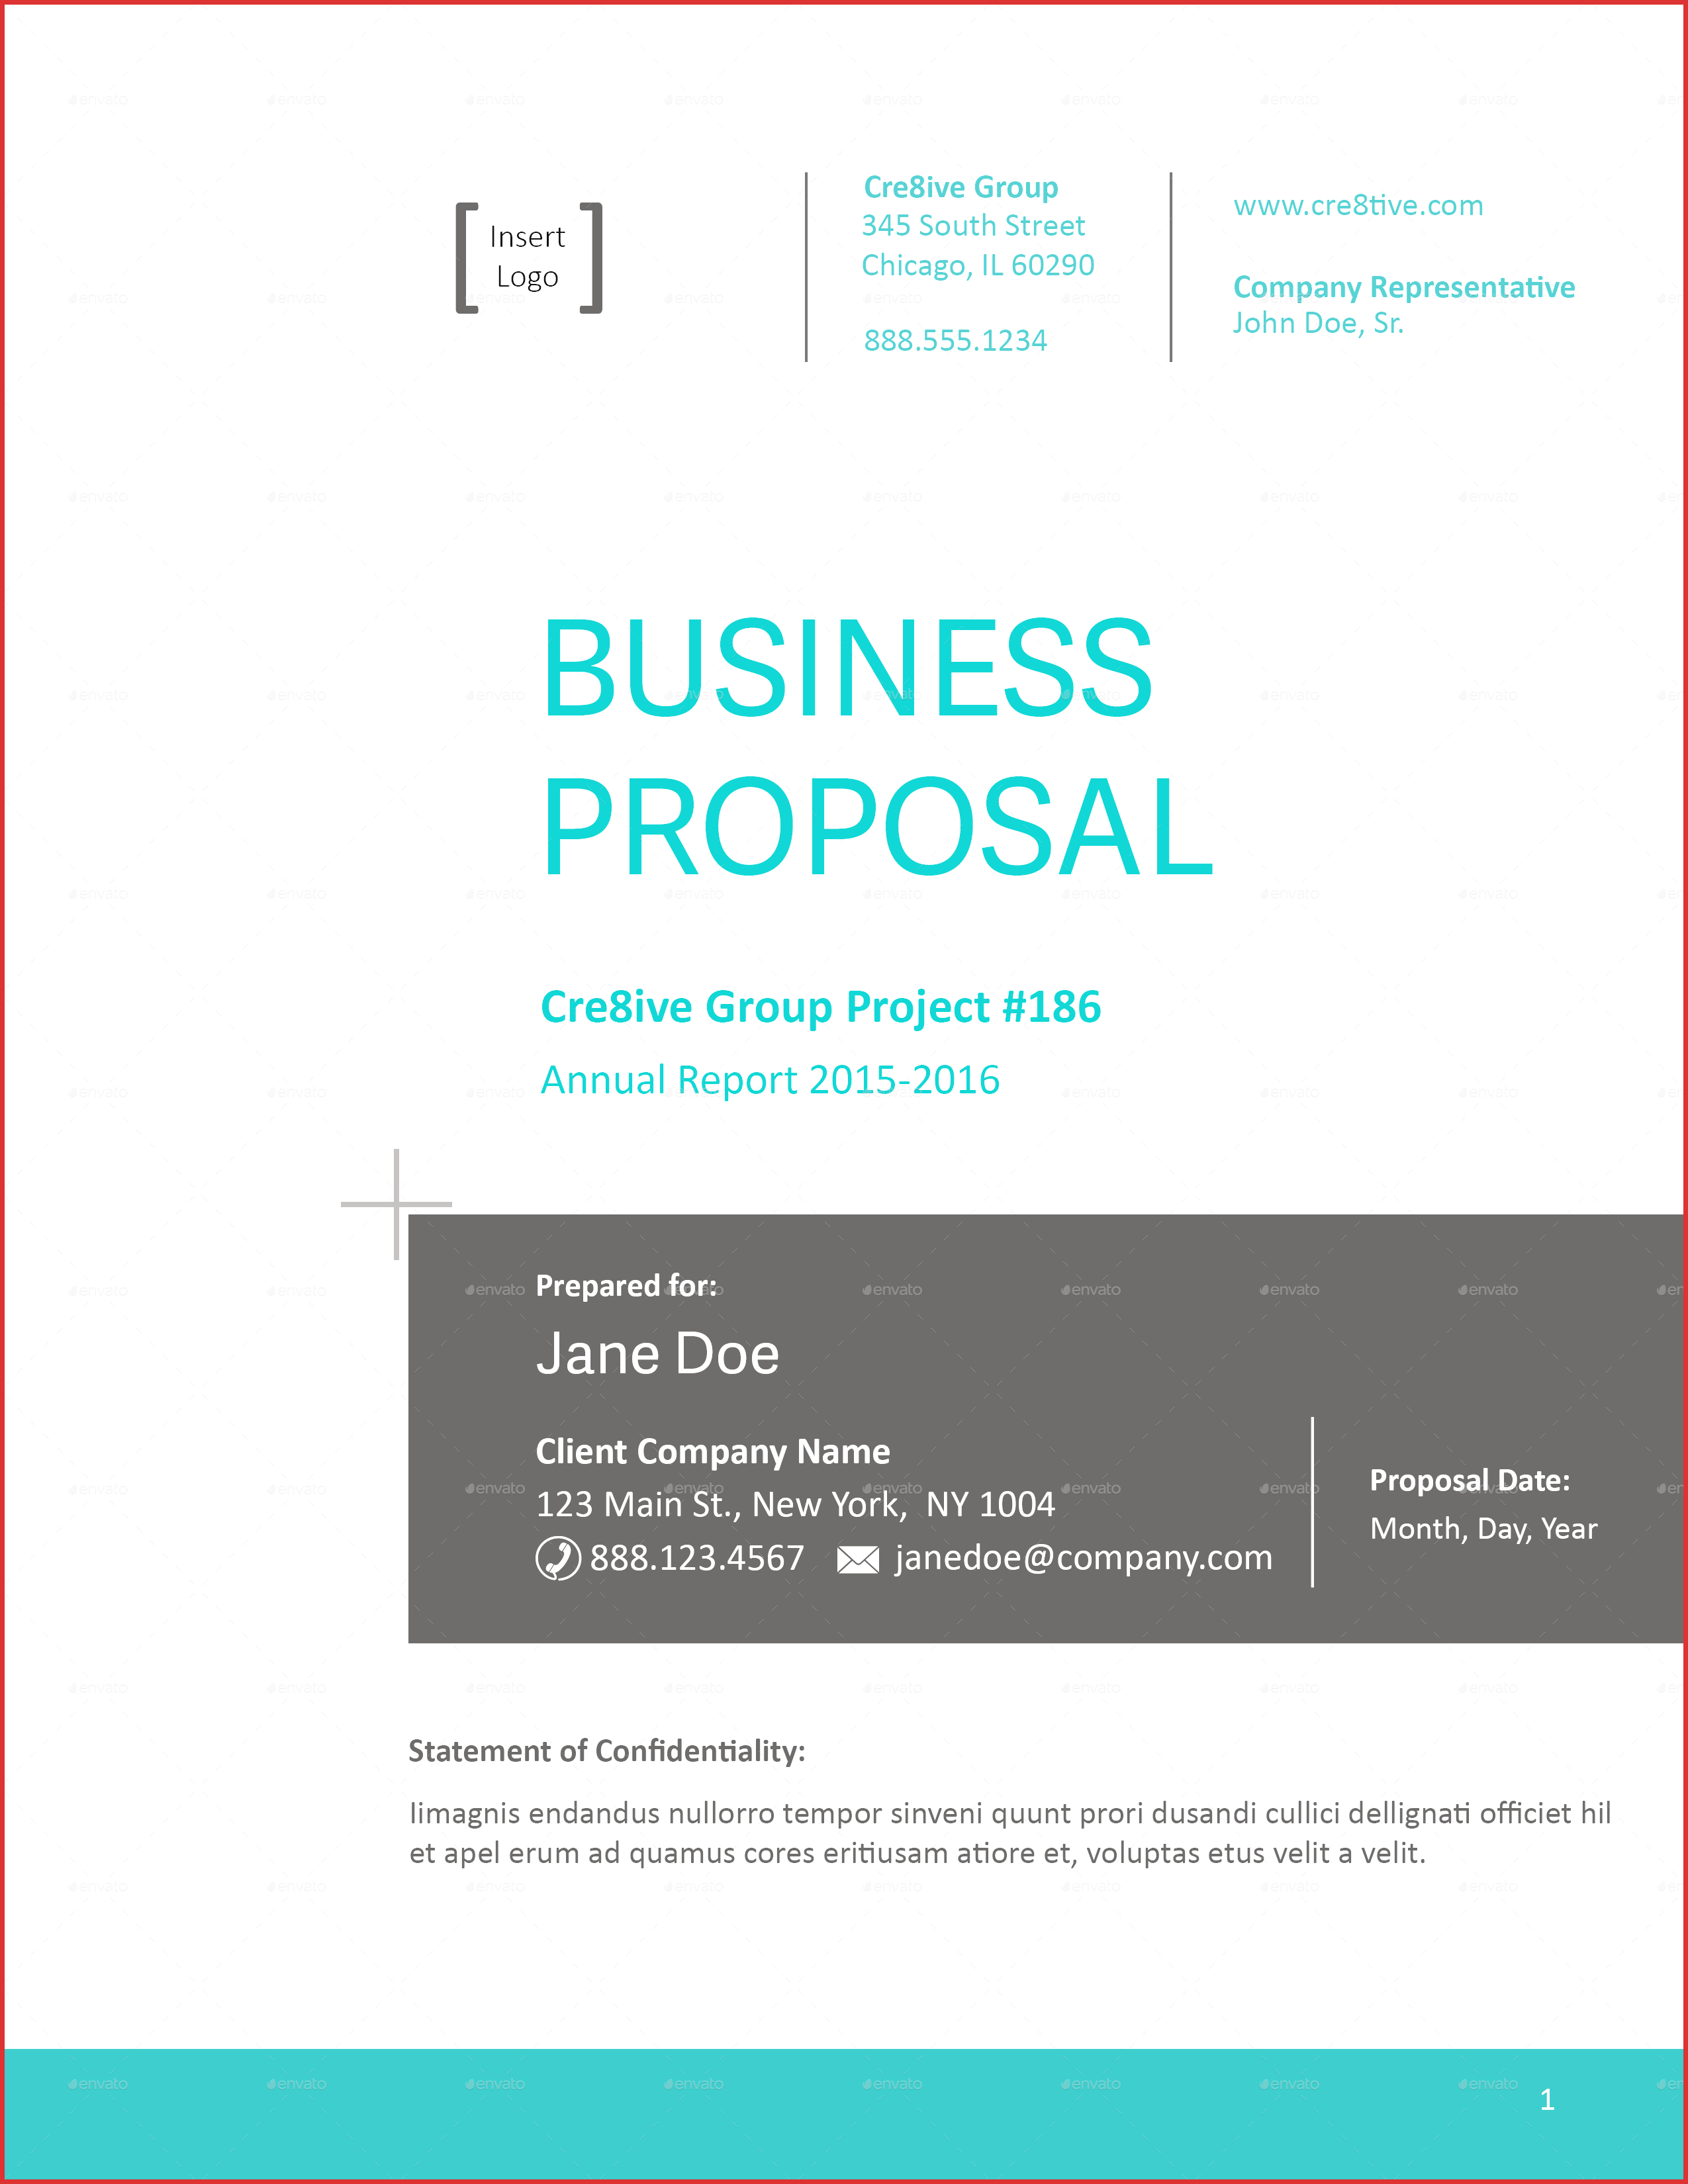 Business Proposal Cover Sheet Letter Training Workbook Template